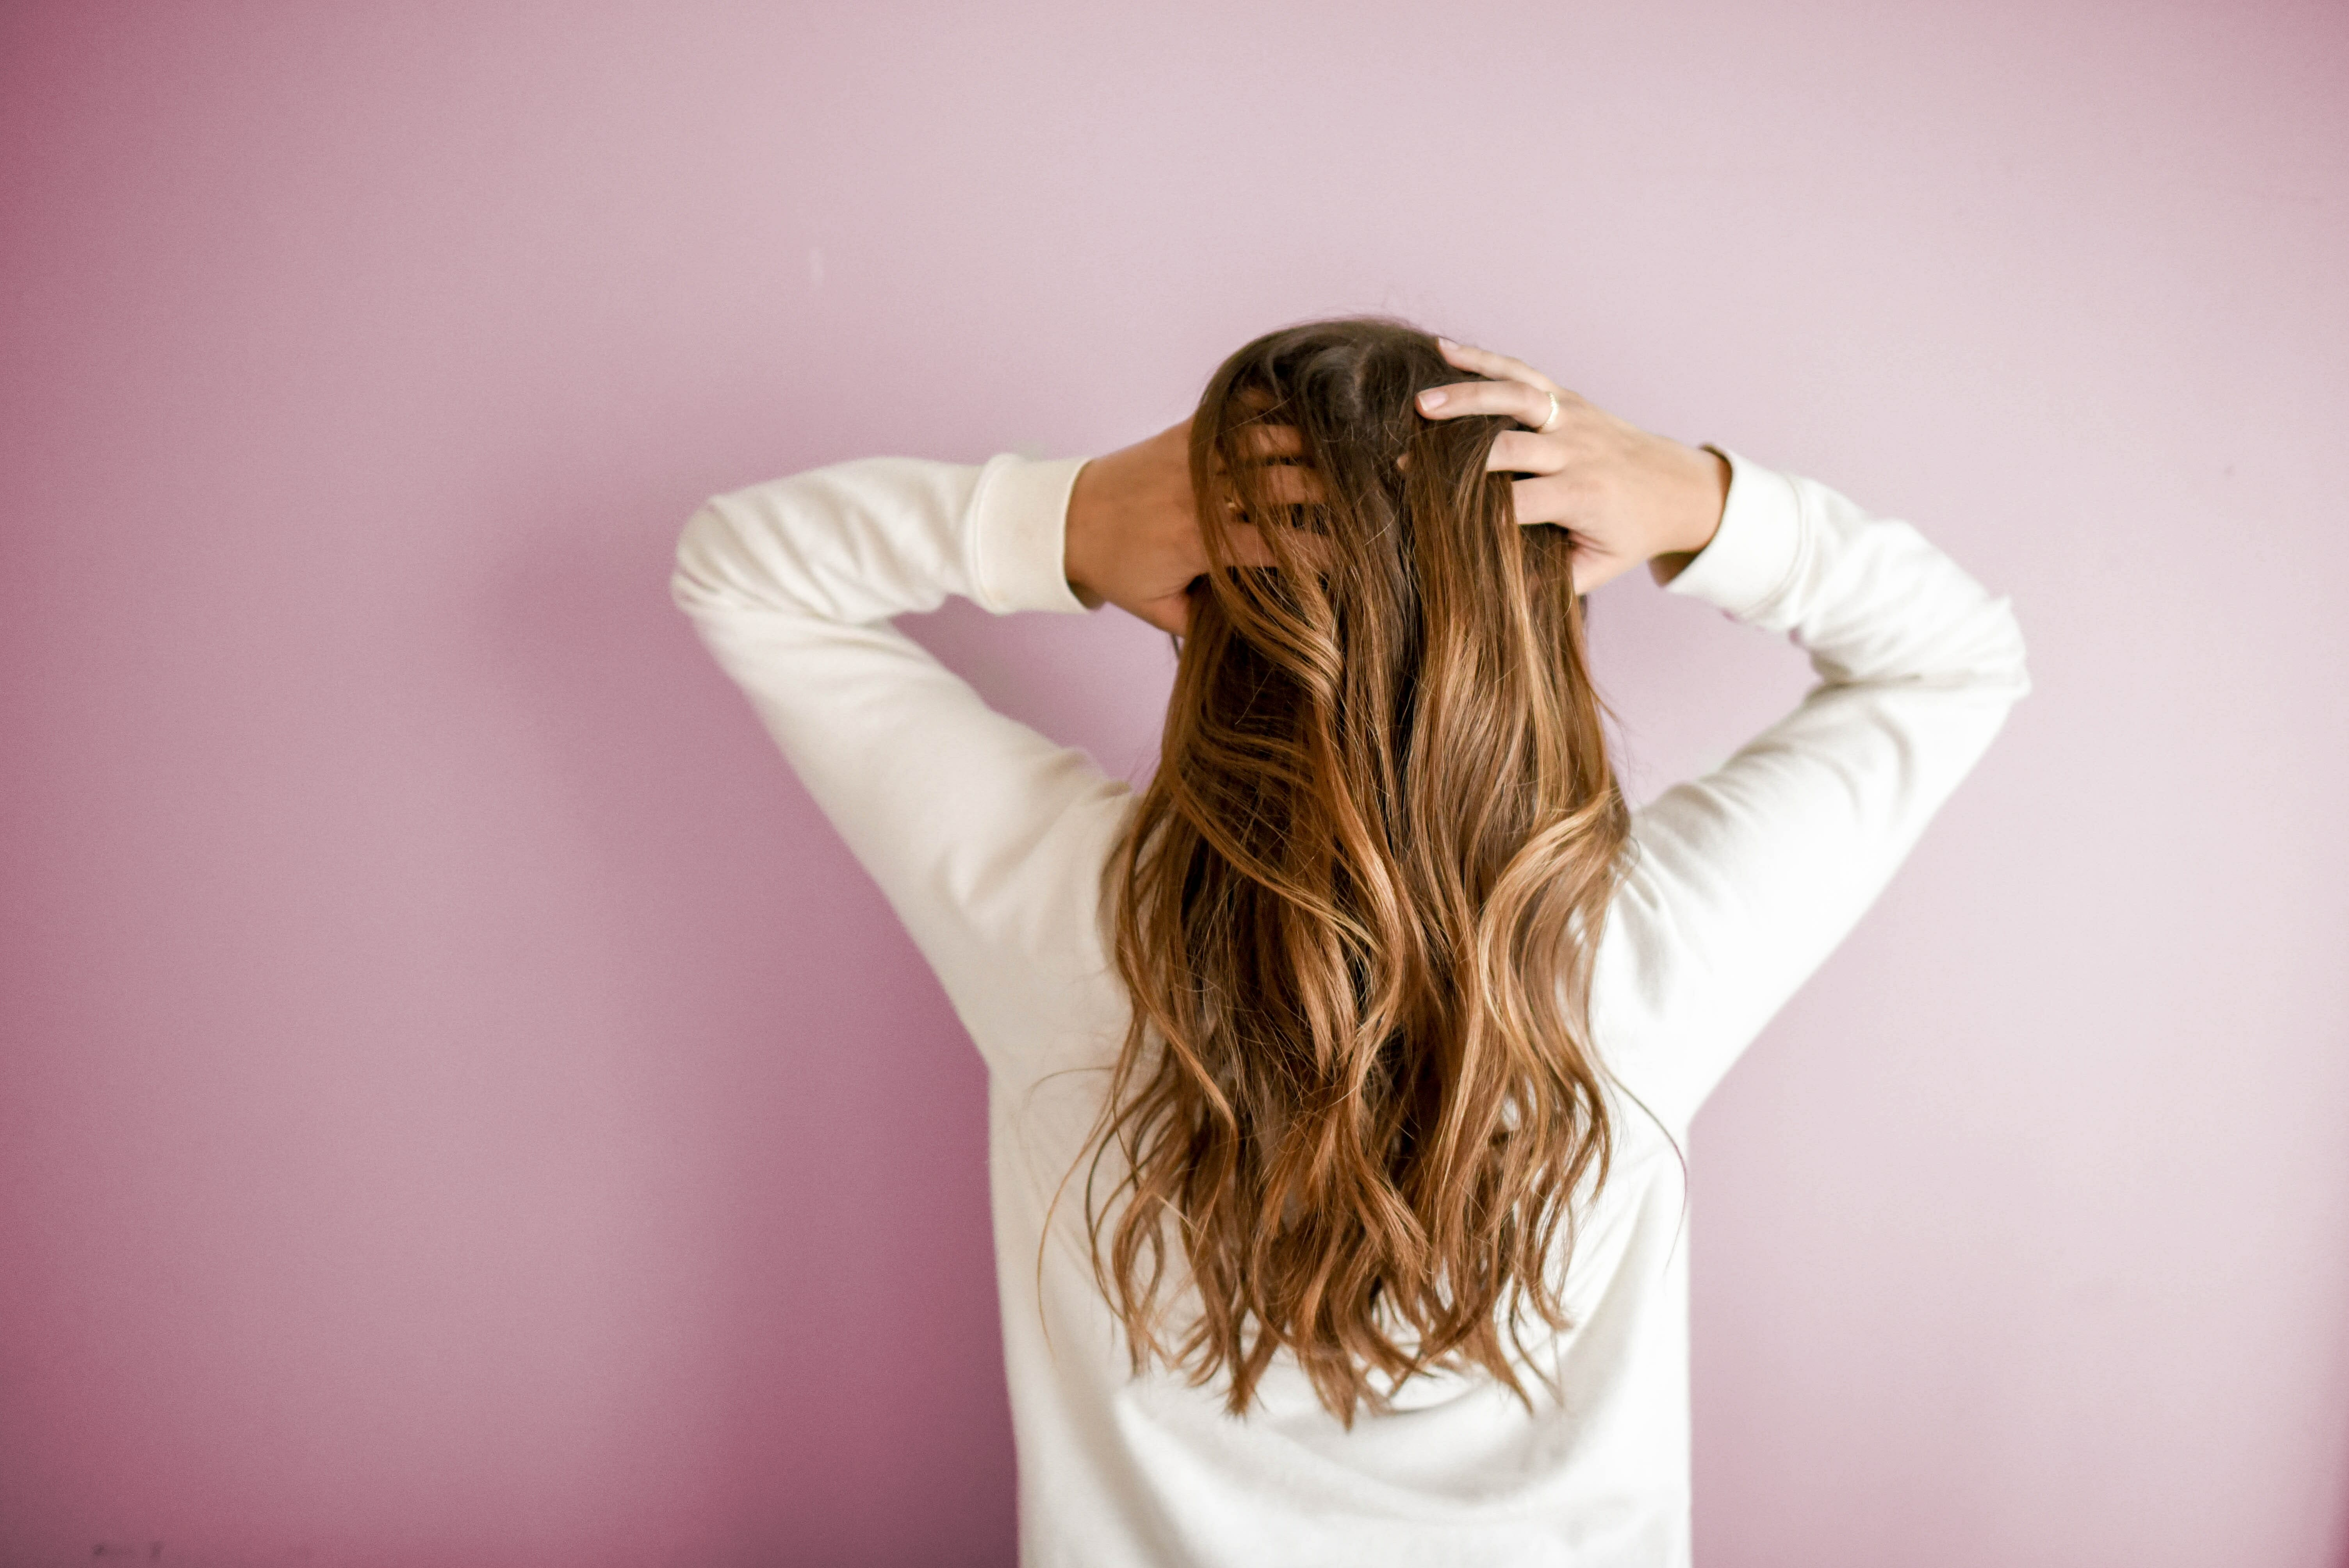 woman with long hair facing the wall and touching her head